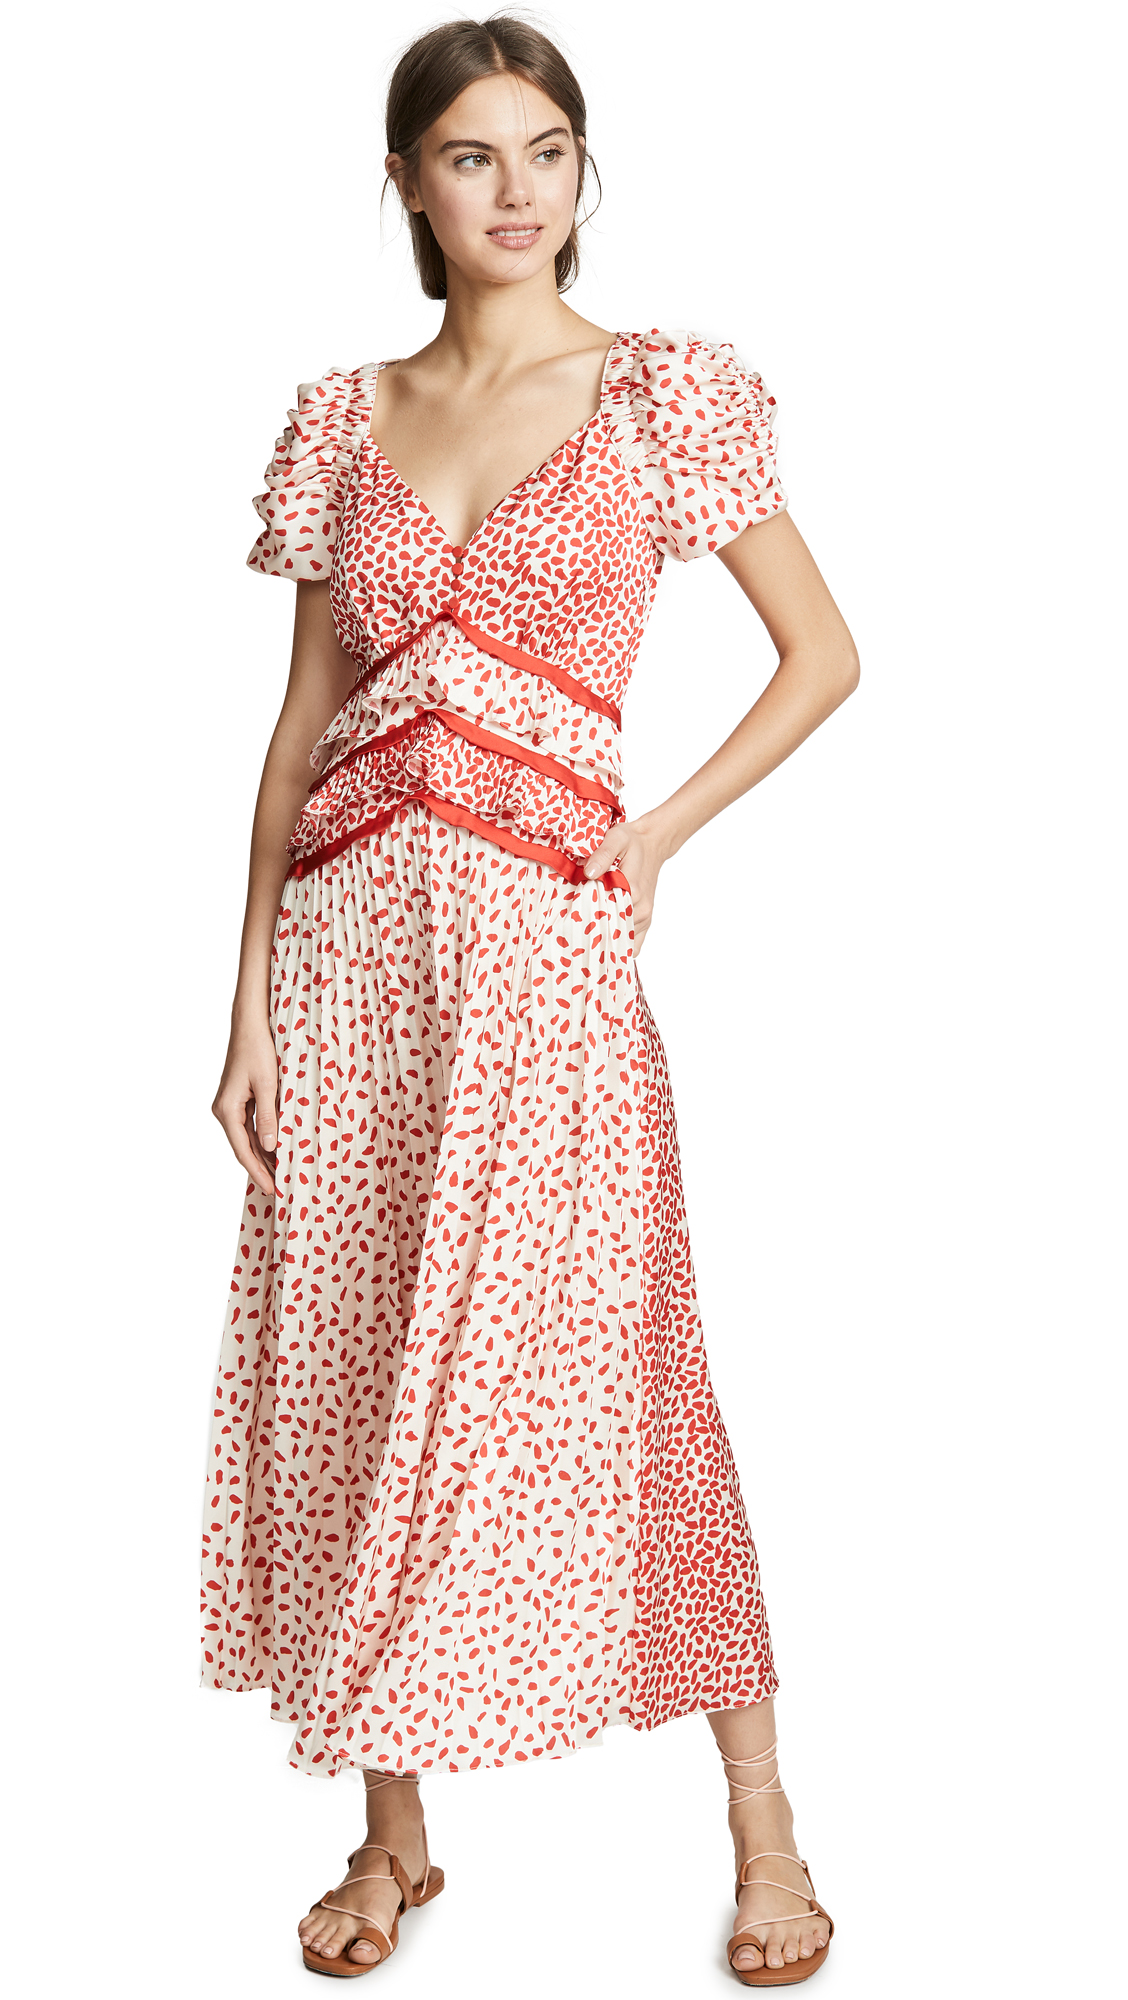 Self Portrait Dot Satin Printed Dress - Cream/Red